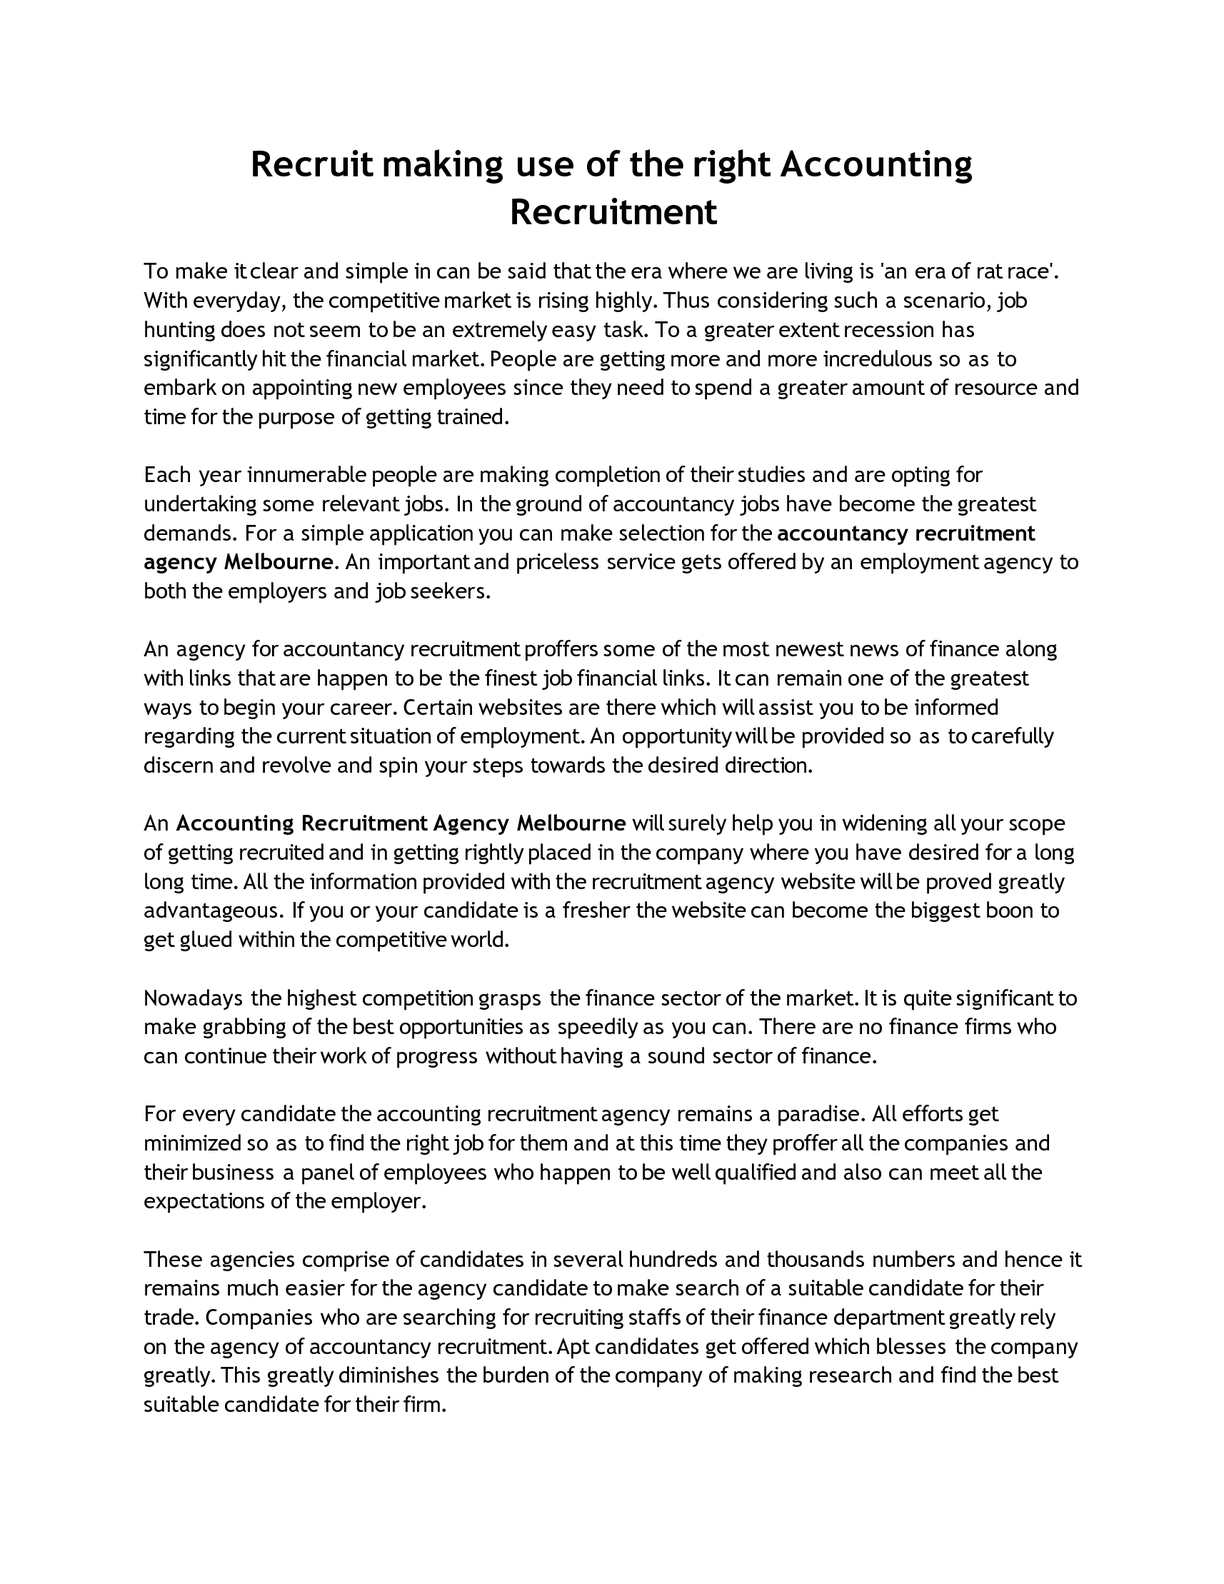 Accountancy Recruitment Agencies Calaméo Recruit Making Use Of The Right Accounting Recruitment